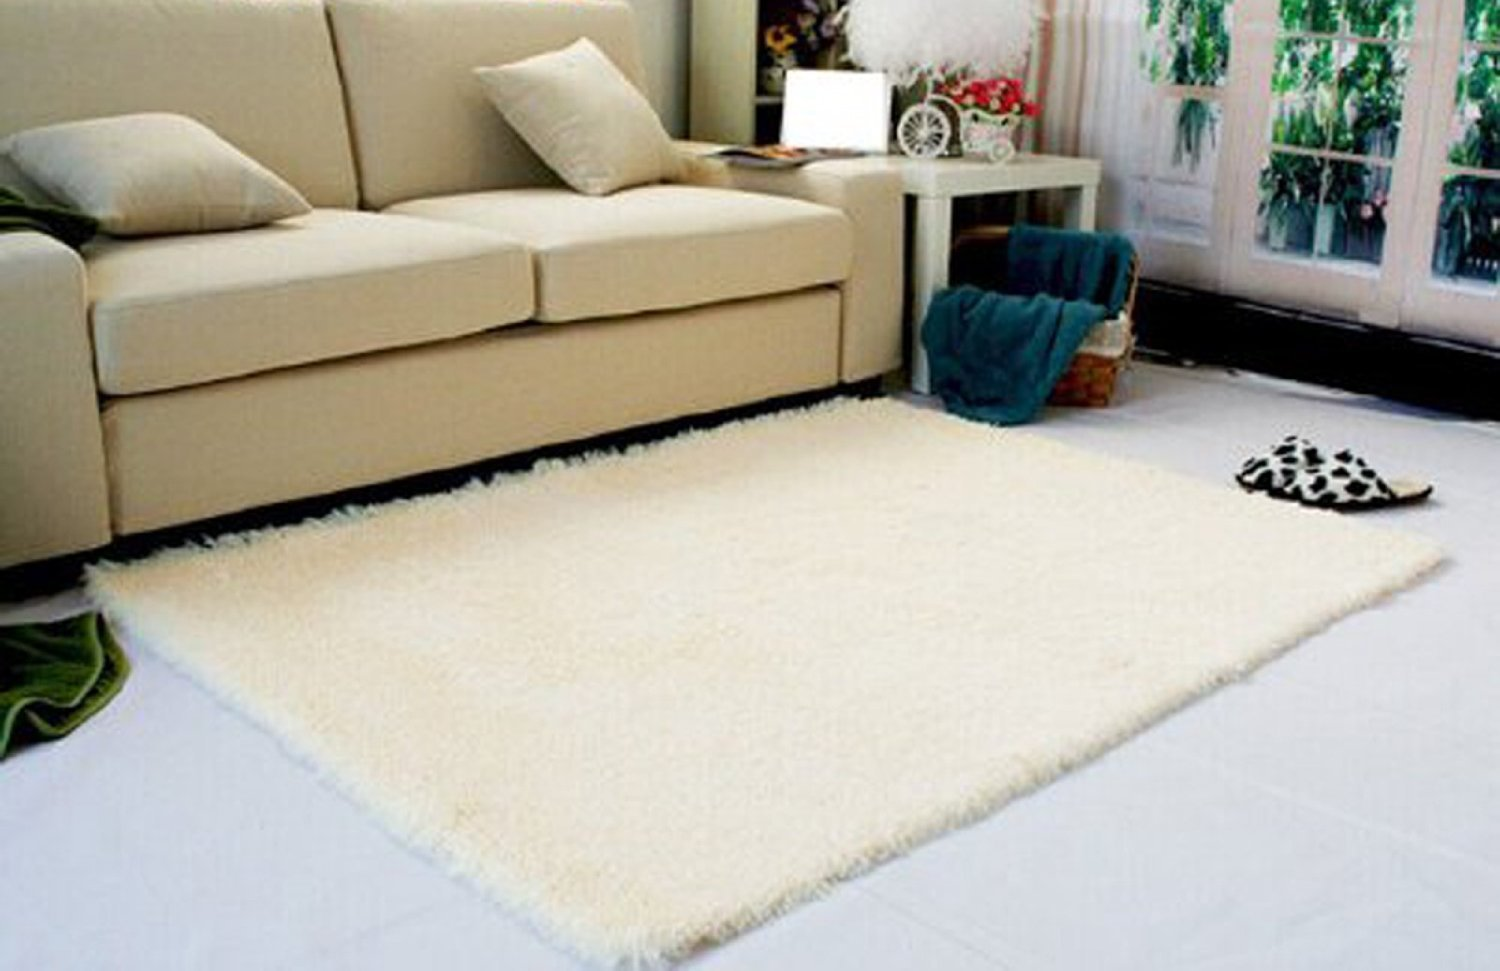 Amazon Super Soft Modern Shag Area Rugs Living Room Carpet Bedroom Rug For Children Play Solid Home Decorator Floor And Carpets 4 Feet By 5